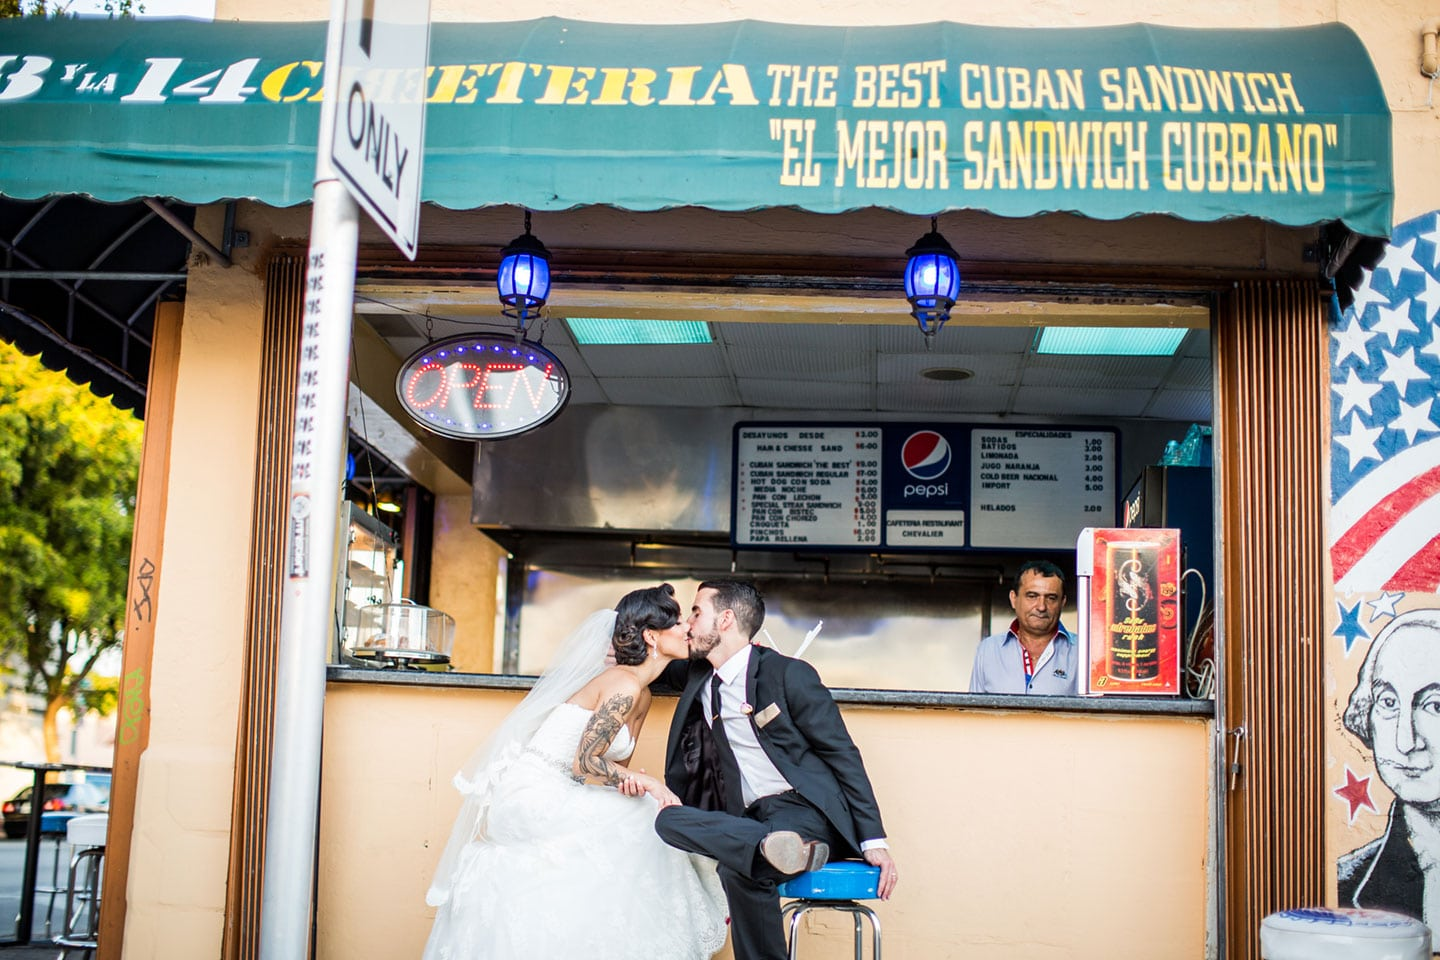 44-Miami-Little-Havana-wedding-photography